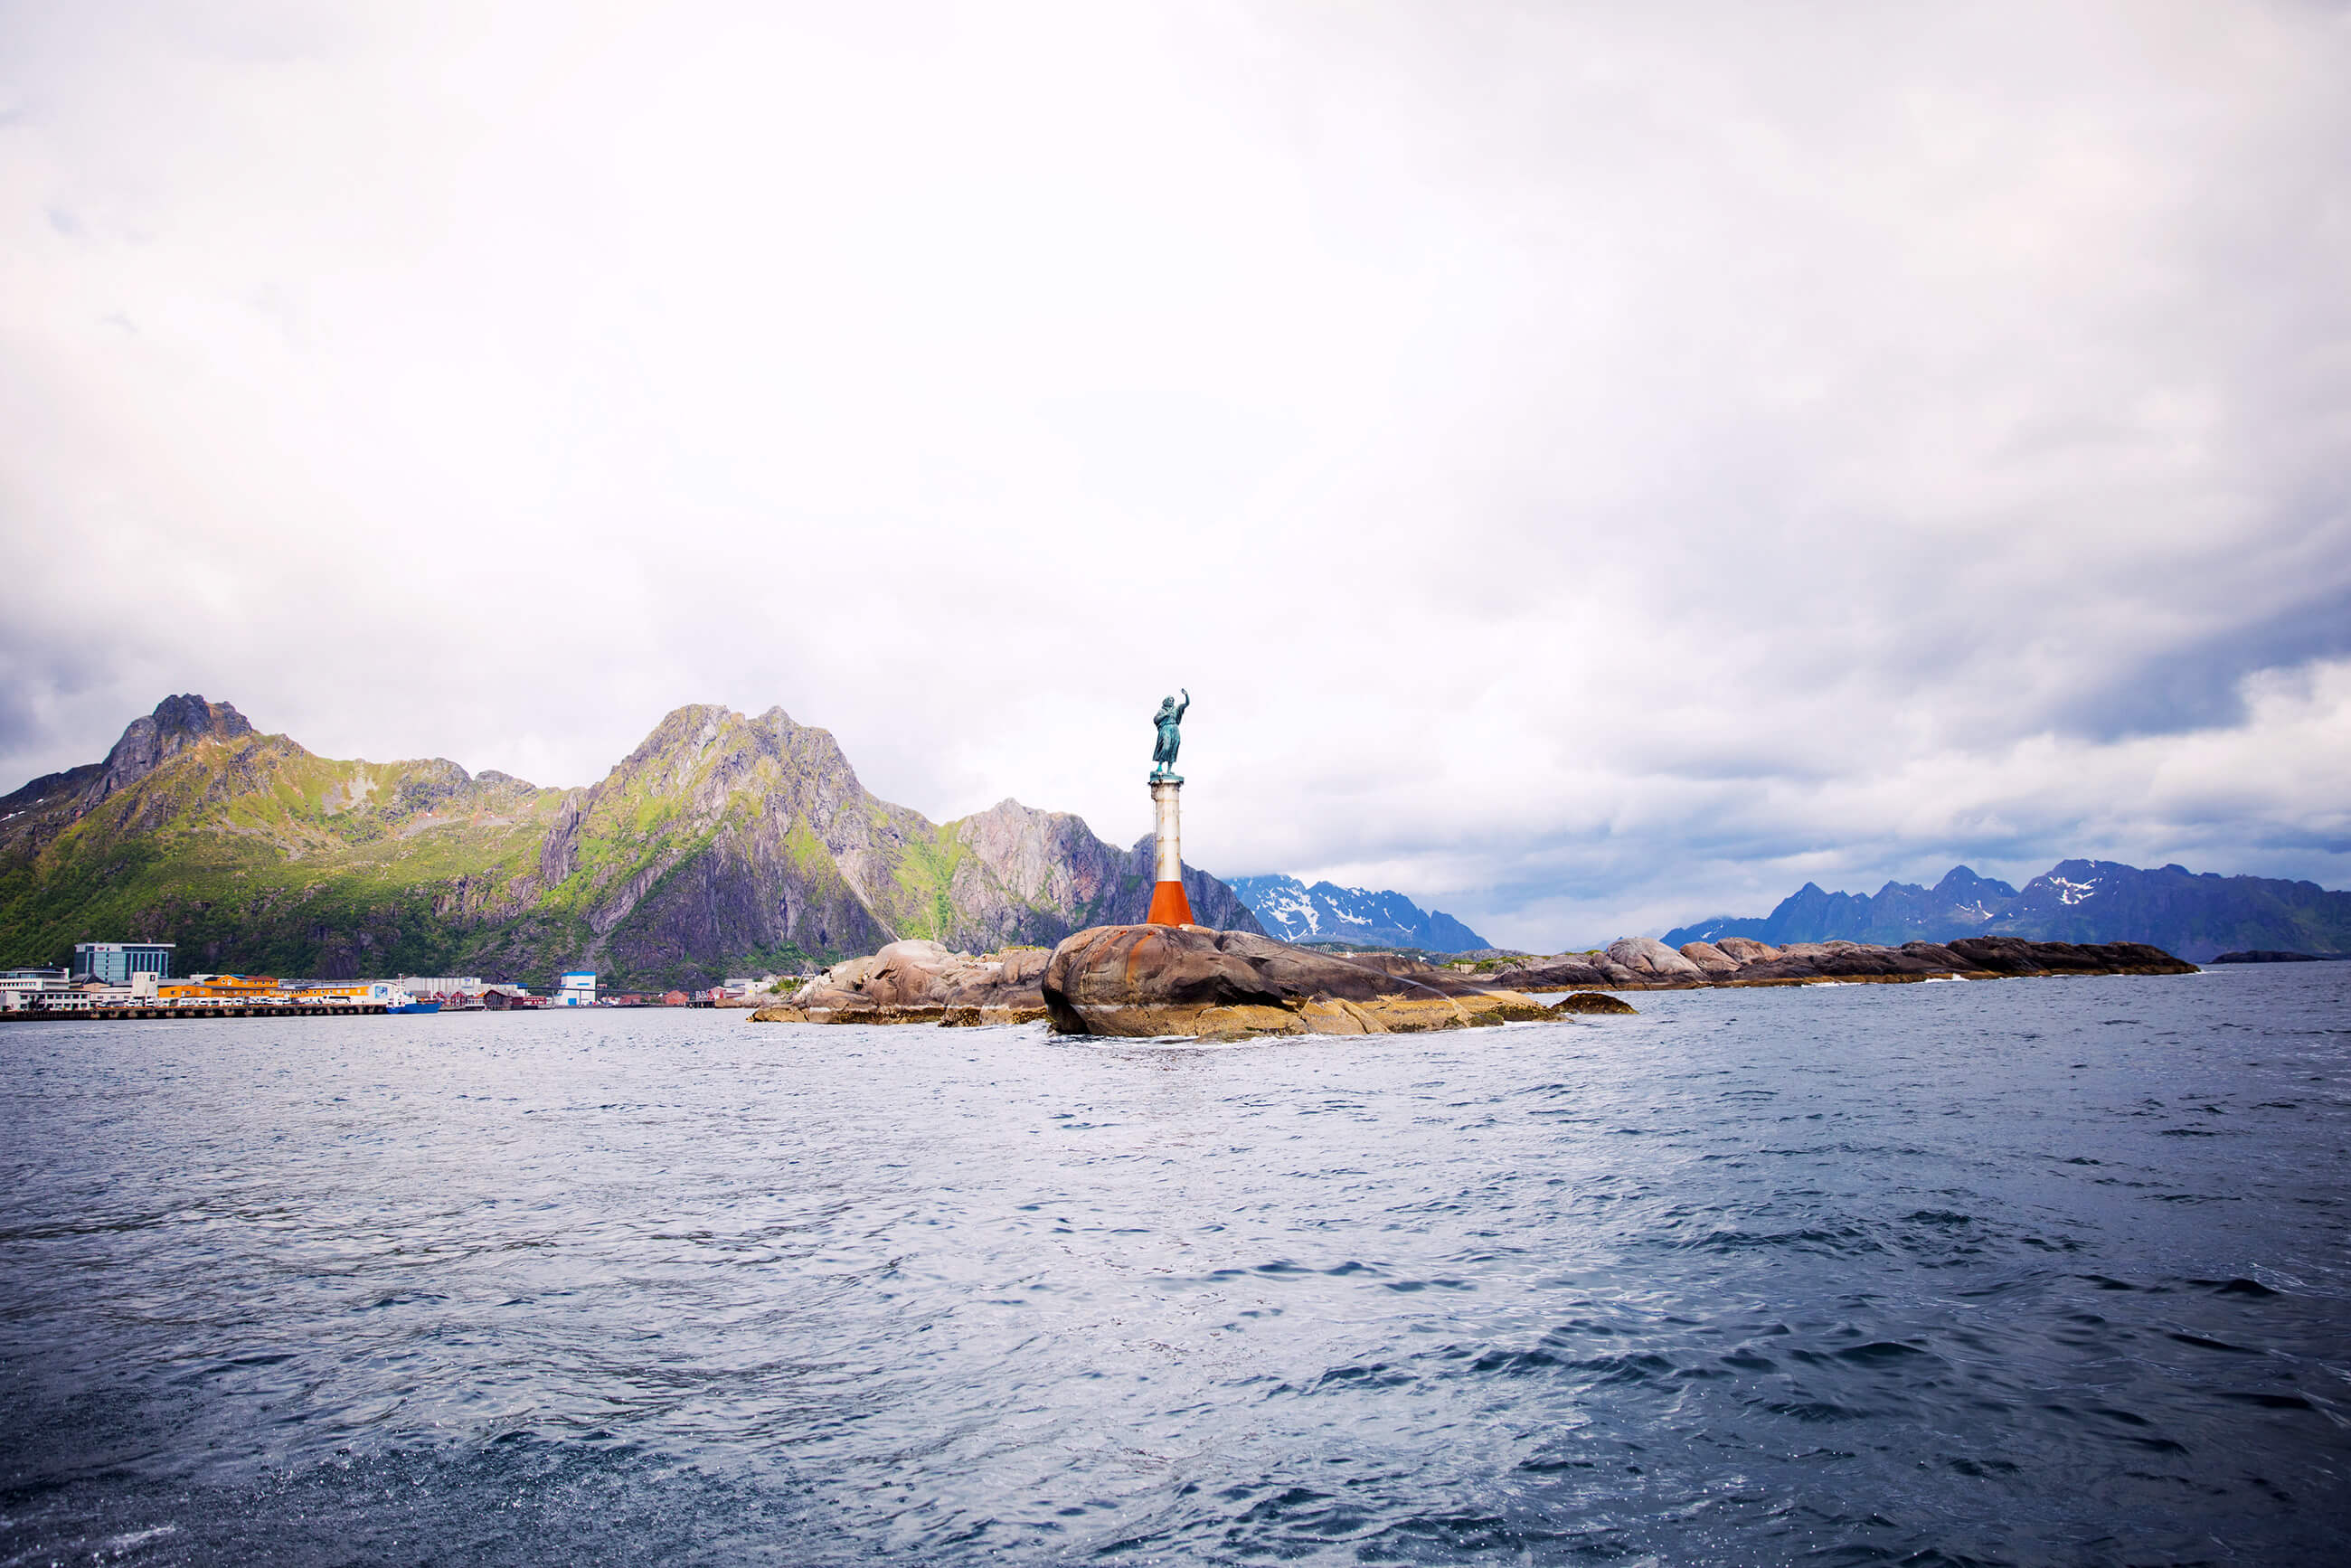 https://bubo.sk/uploads/galleries/5043/fiskerkona-in-svolvar-fisherman-s-wife-the-statue-fiskerkona-in-svolvar-norway-hgr-116723--photo_rune_kongsro.jpg